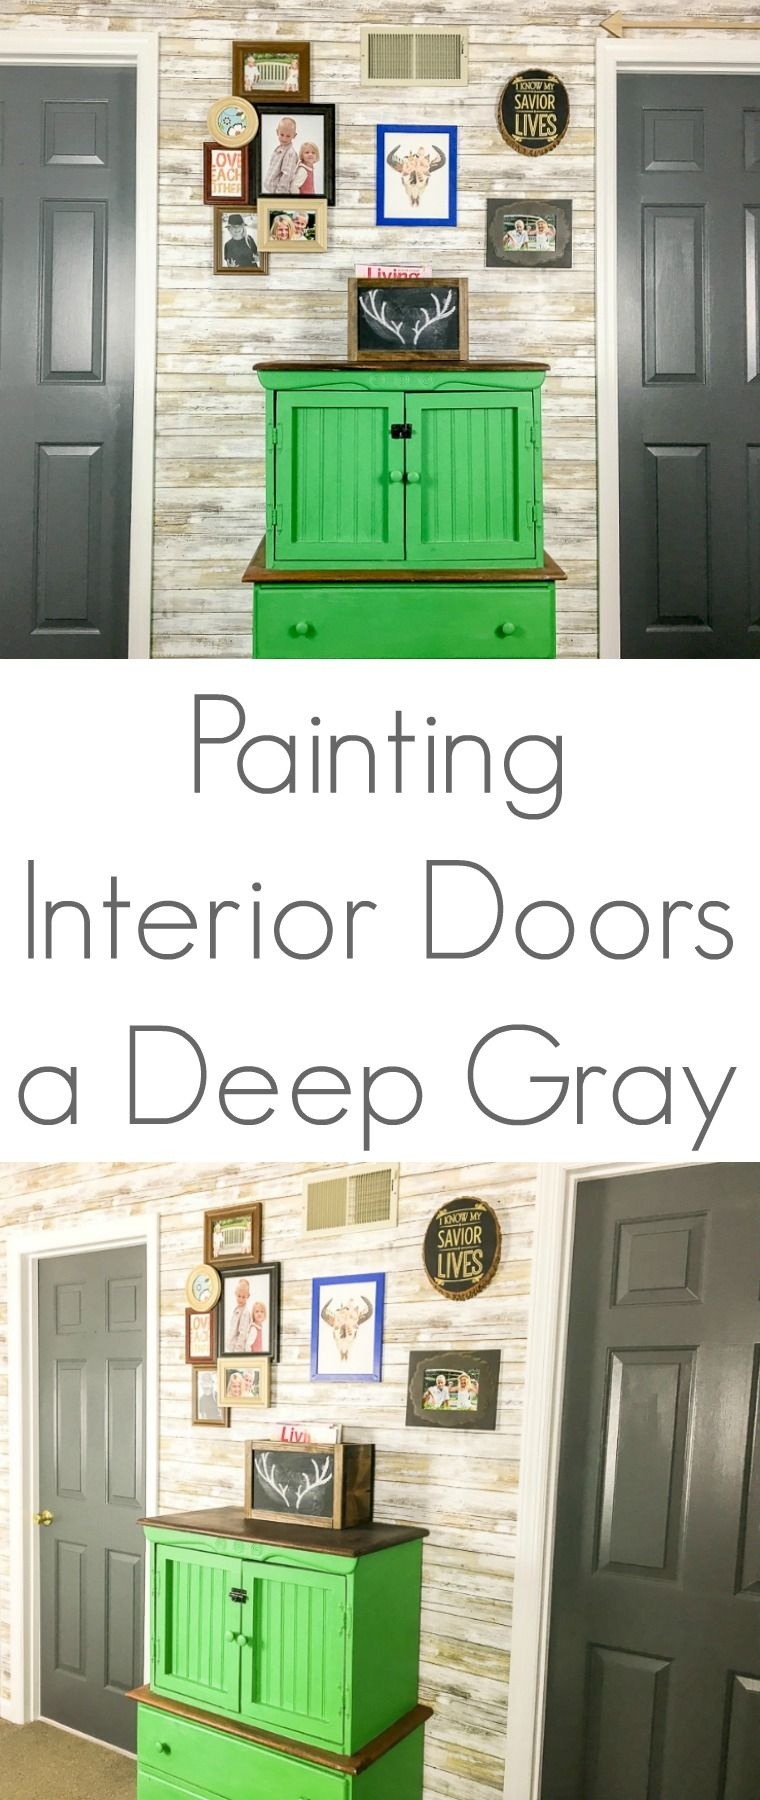 I Love The Change That Simple Paint Makes In This Space By Painting Interior  Doors A